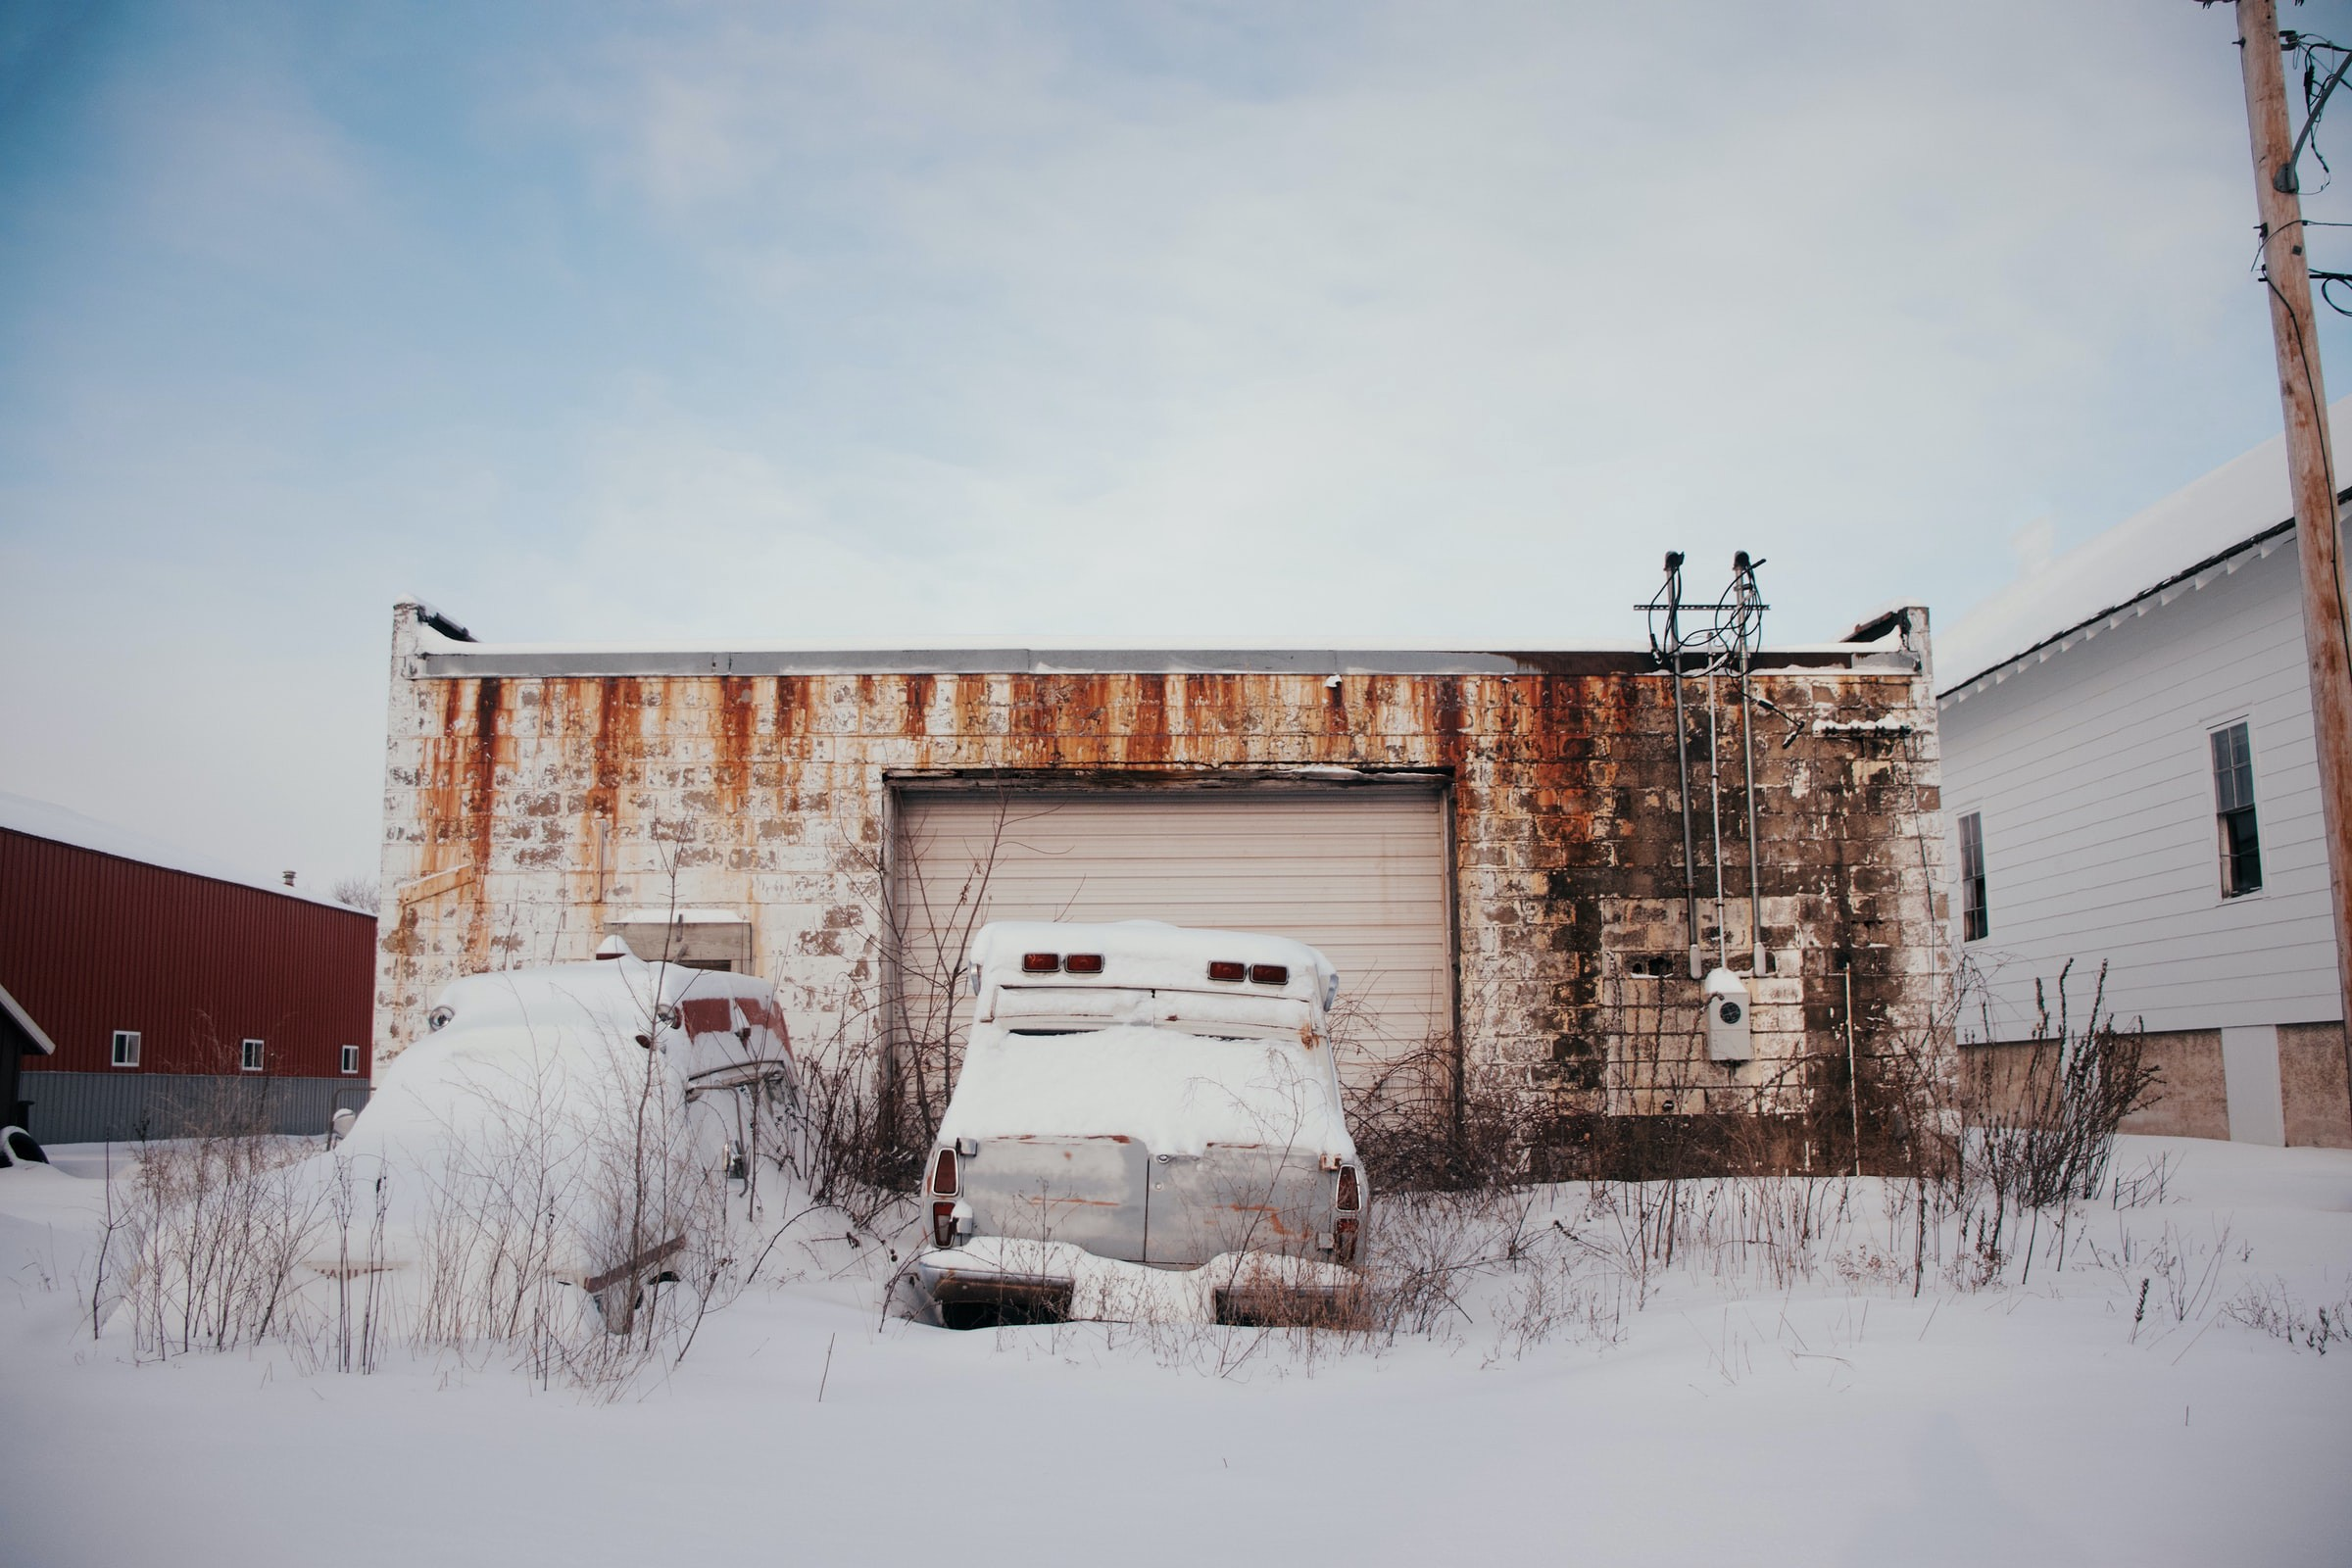 A snow-covered scene with a dilapidated garage and broken-down cars near it.